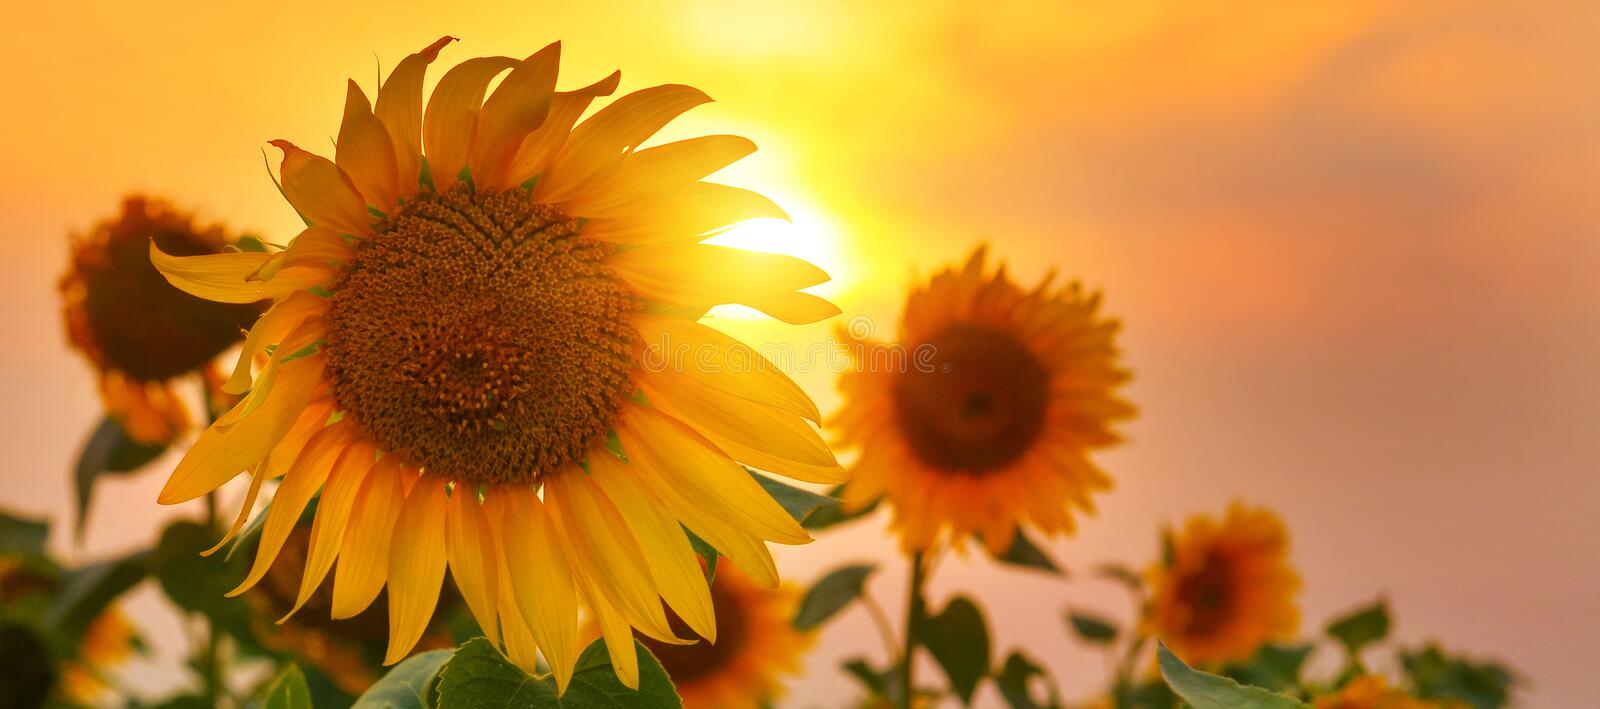 Sunflowers in high summer with rising sun. Close up photo with yellow ornamental plant at sunrise stock images